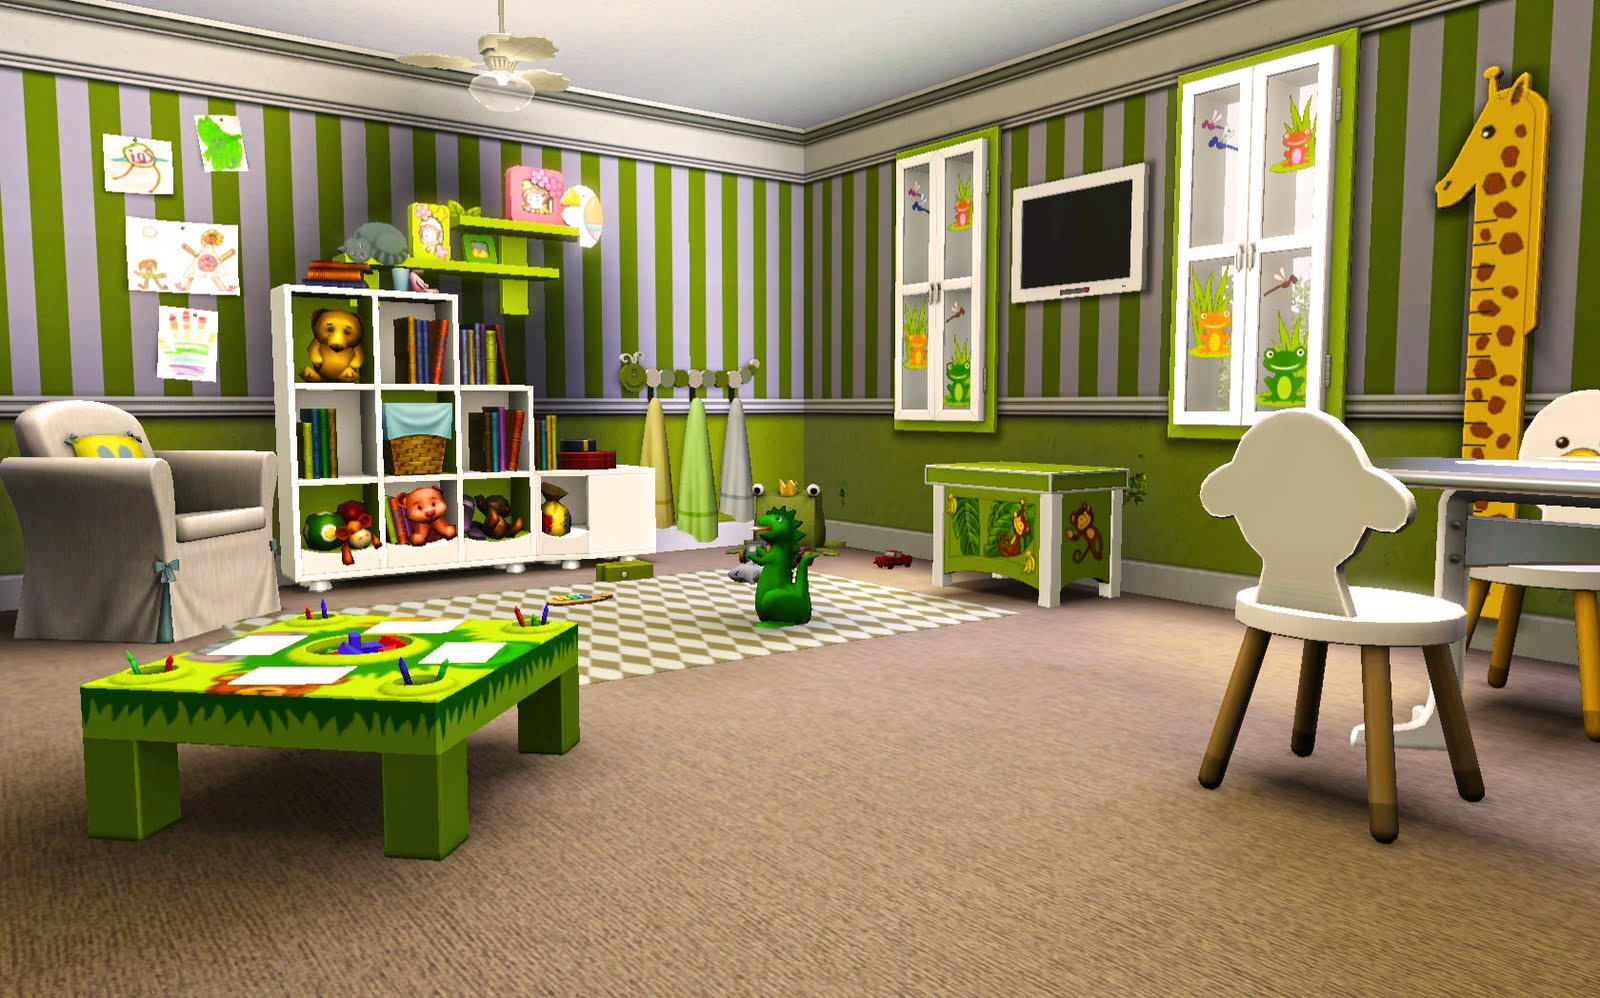 Beautiful wallpapers daycare dynamo by eva von asch Dacare room designs